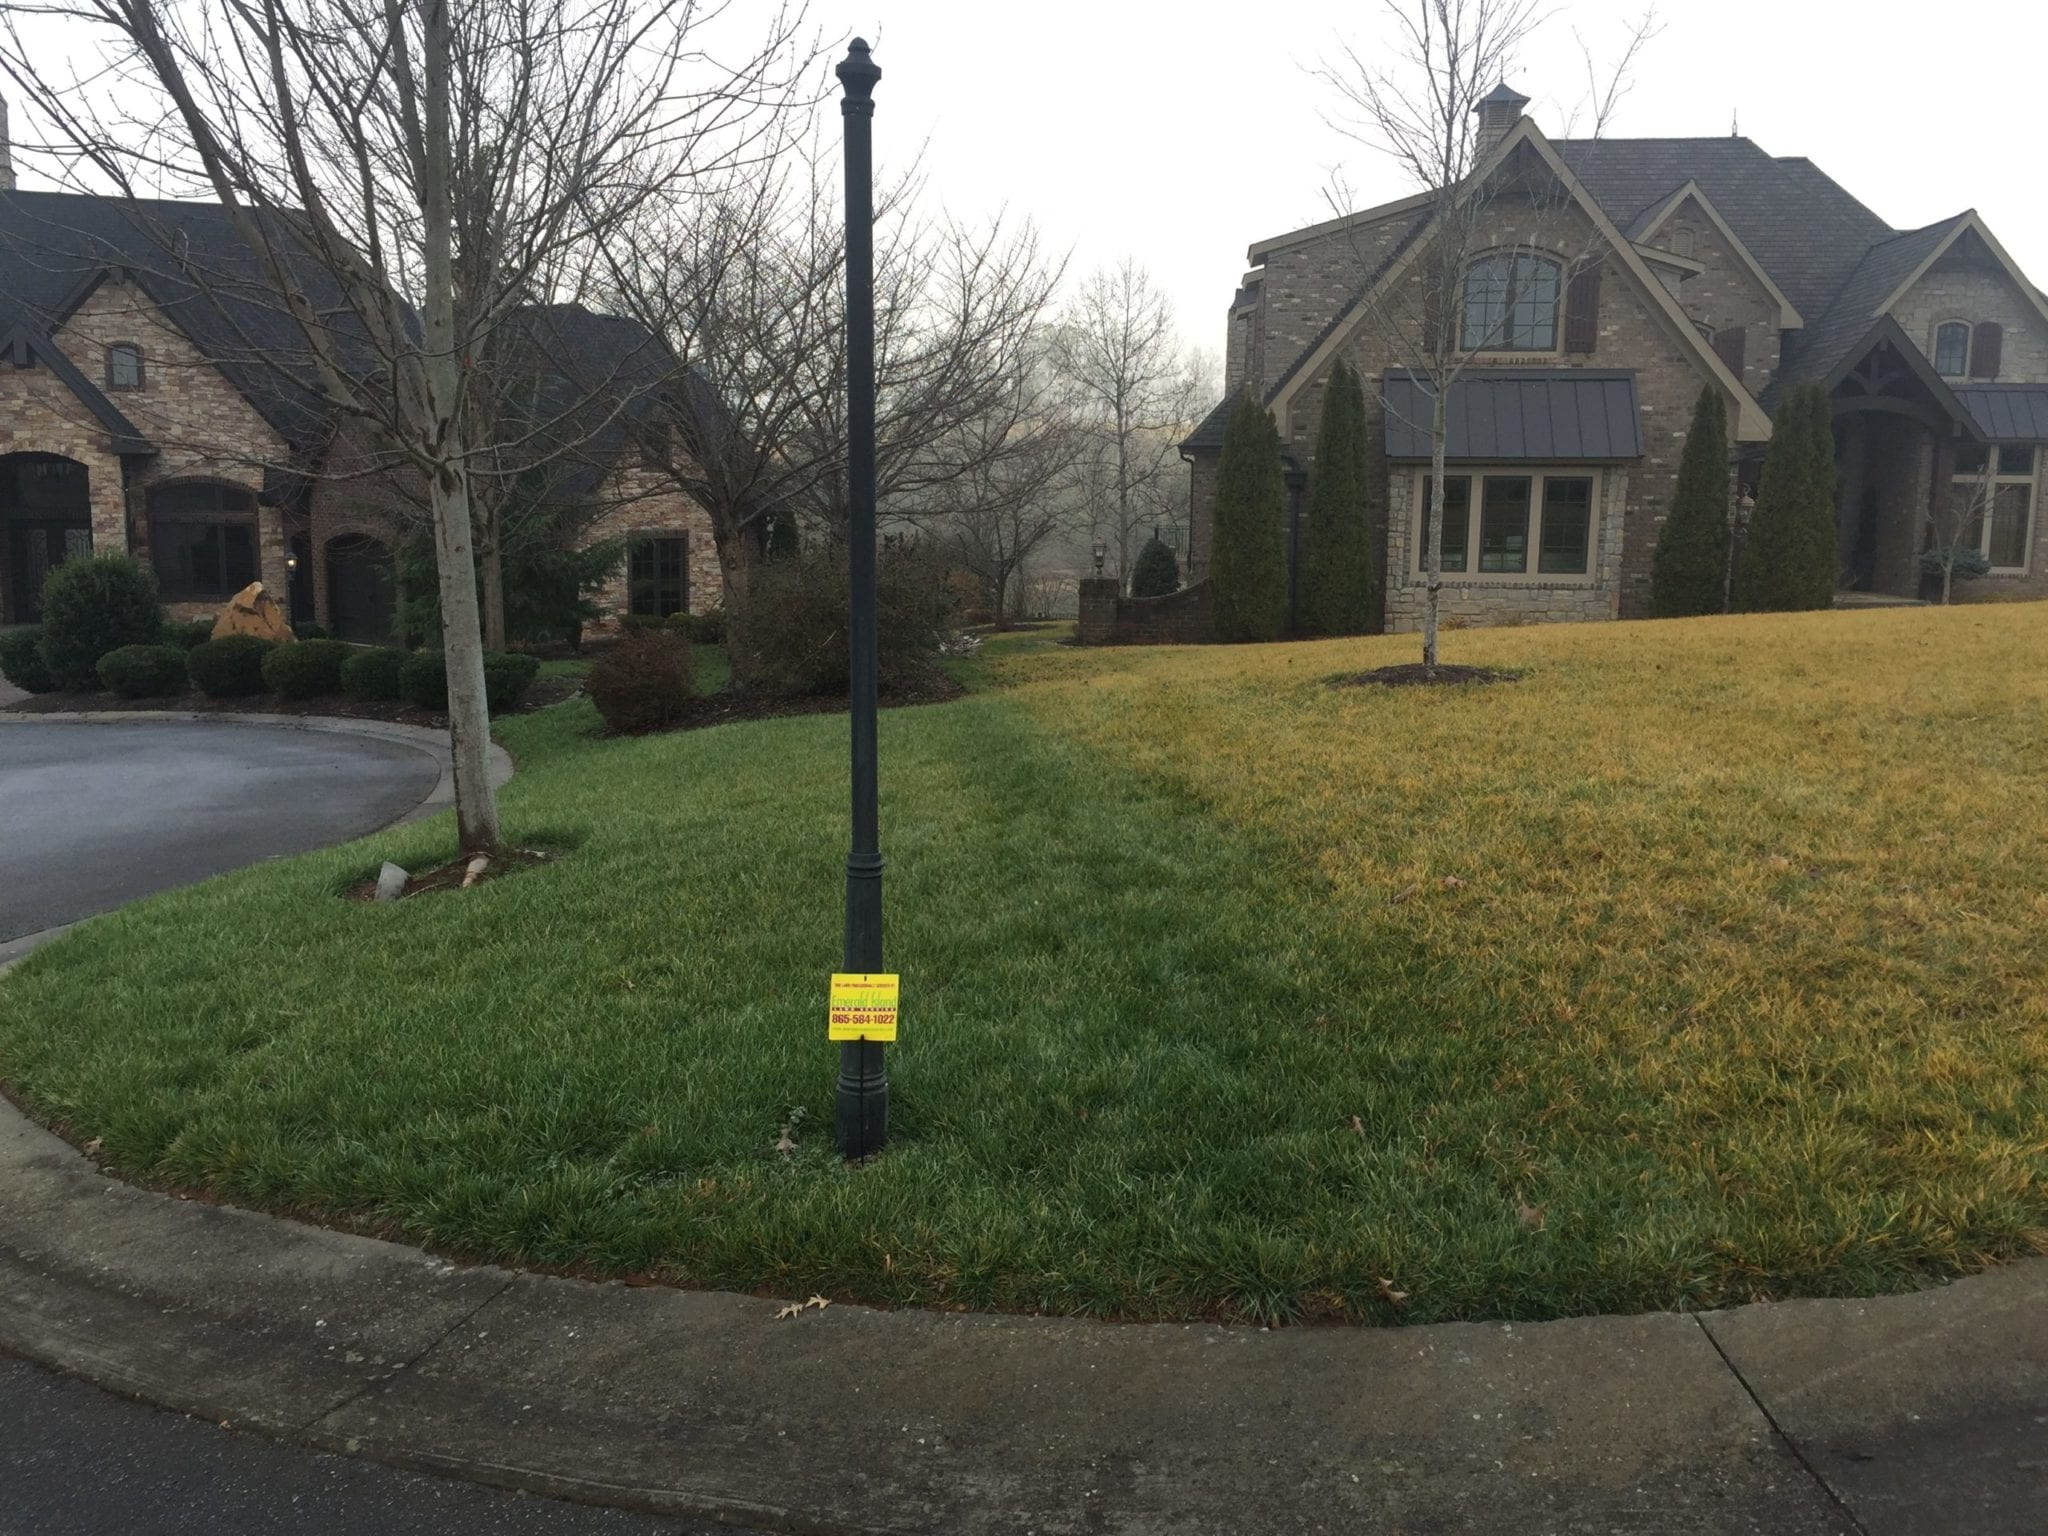 a side by side comparison of 2 lawns showing the healthier lawn thats treated by Emerald Island